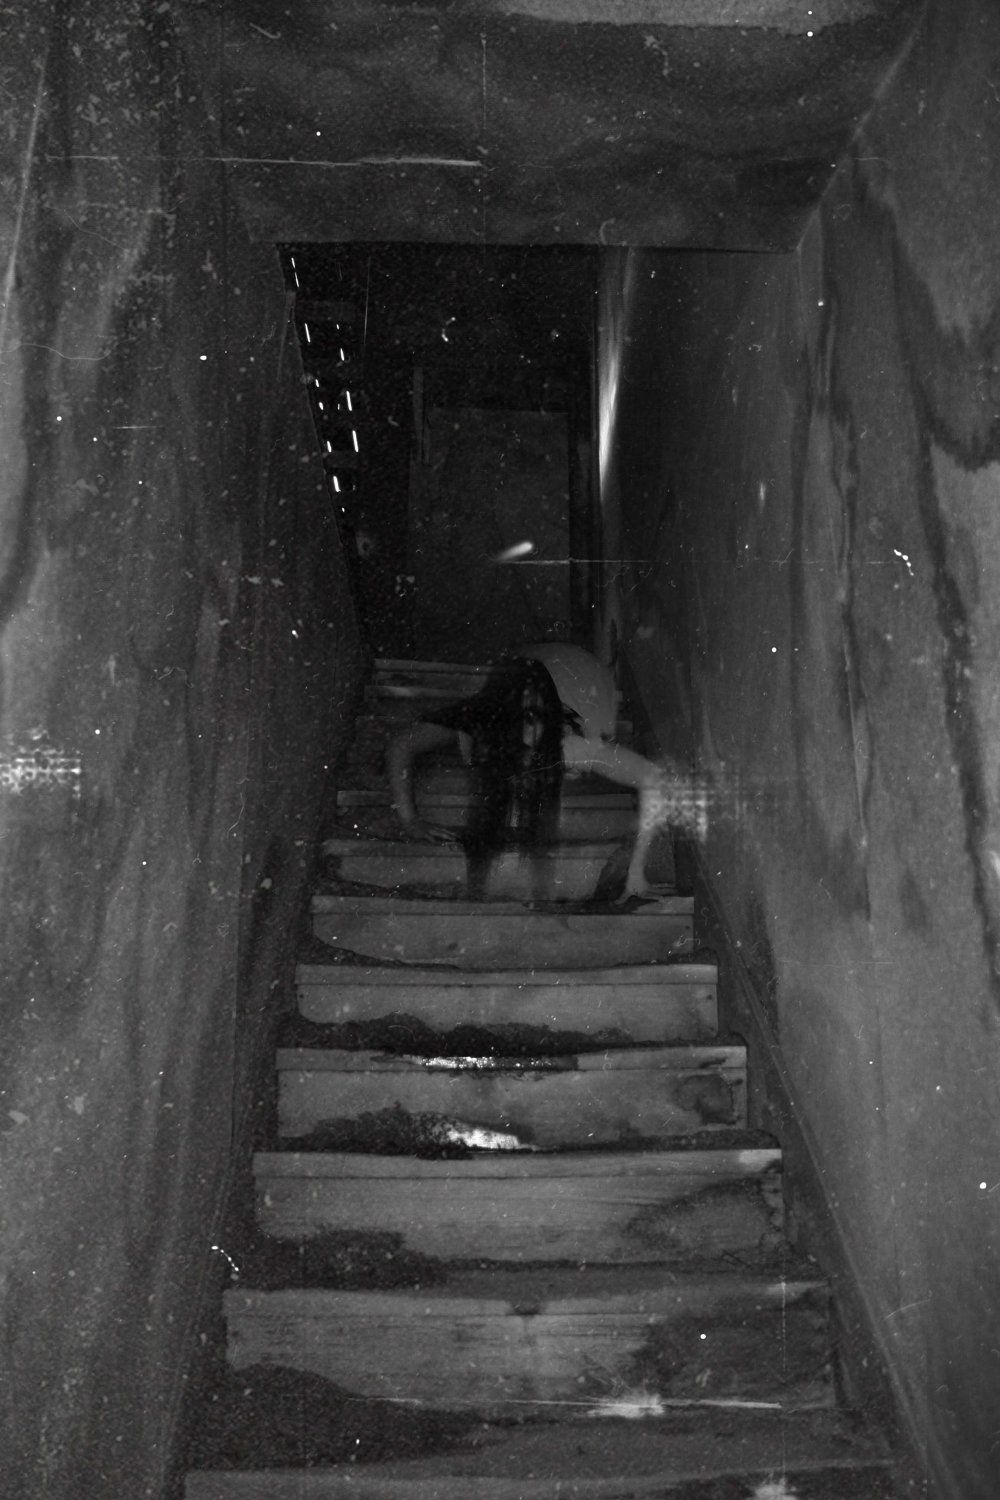 Creepy basement stairs